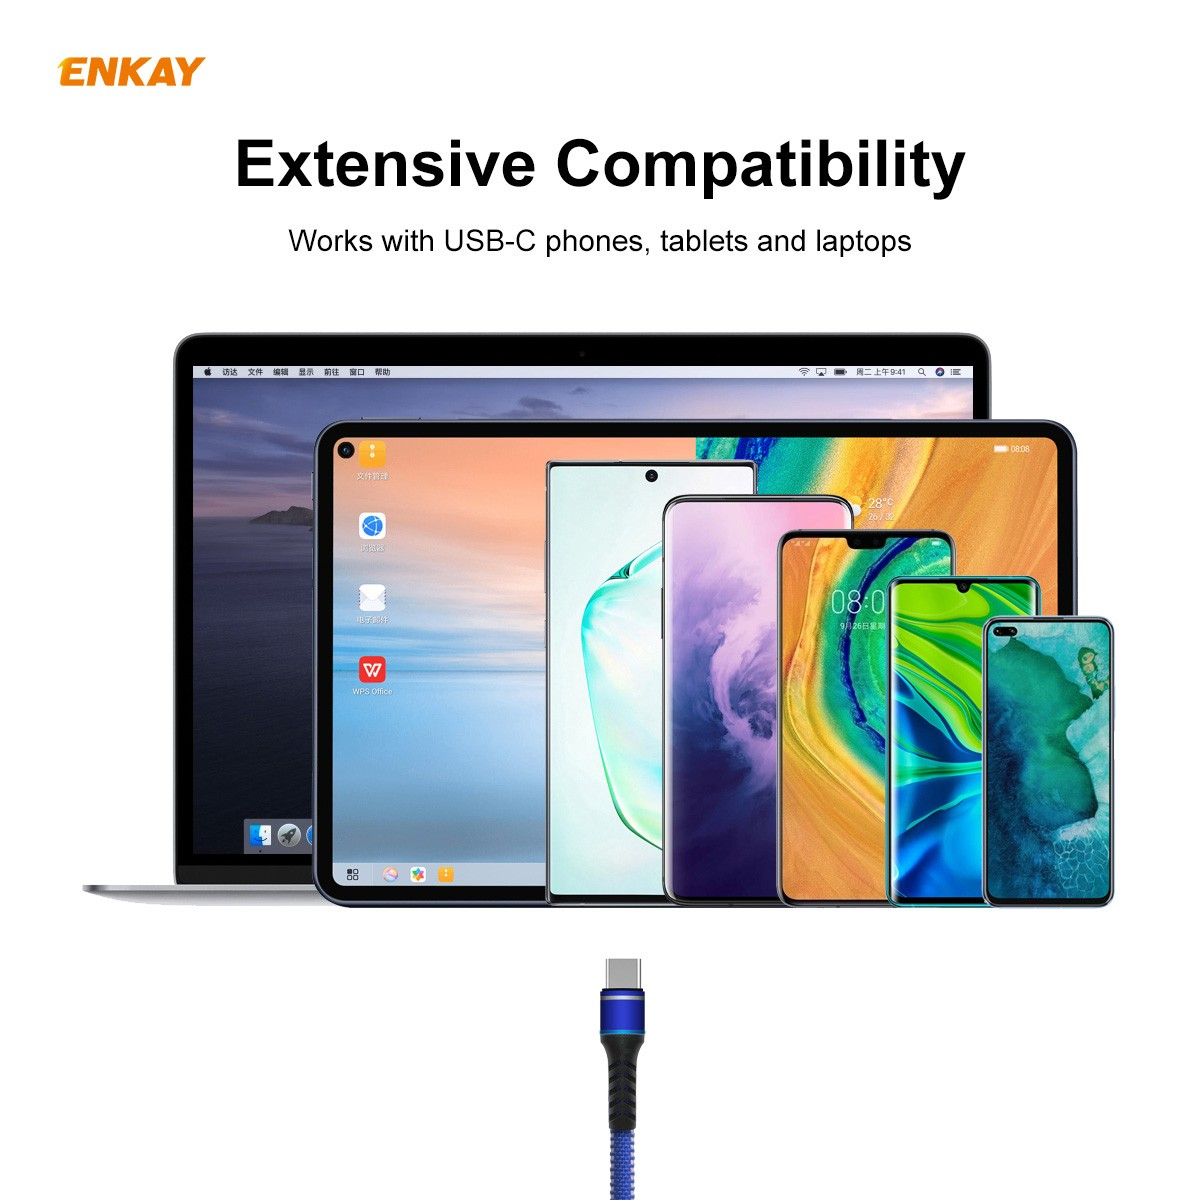 ENKAY ENK-CB107 USB 3.0 to Type-C Data Cable 1M - Blue